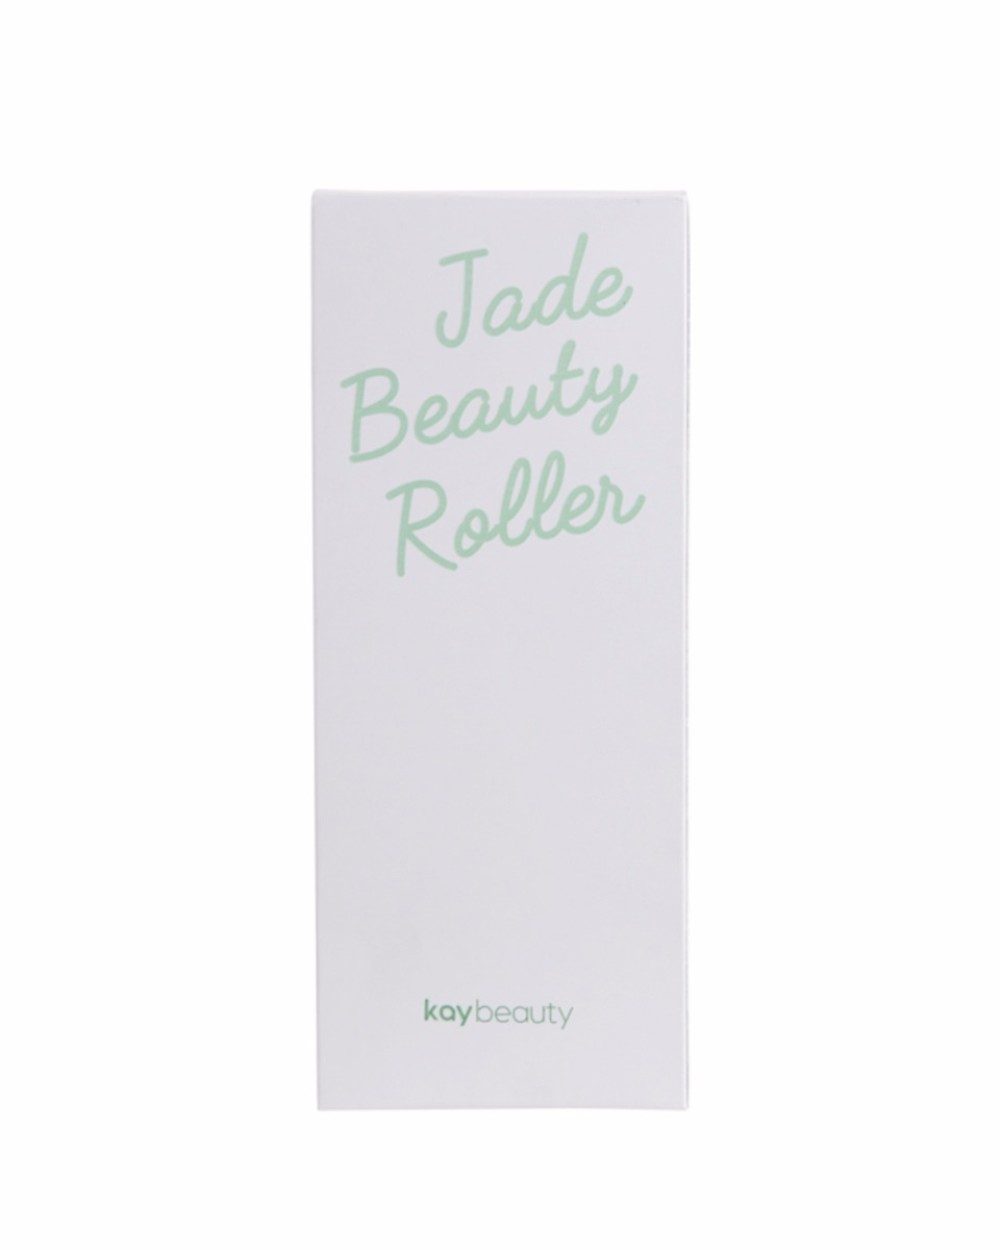 https://files.sirclocdn.xyz/kaycollection/products/_181001152357_Beauty%20Jade%20Roller%201%20-%203160132000_zoom.jpeg